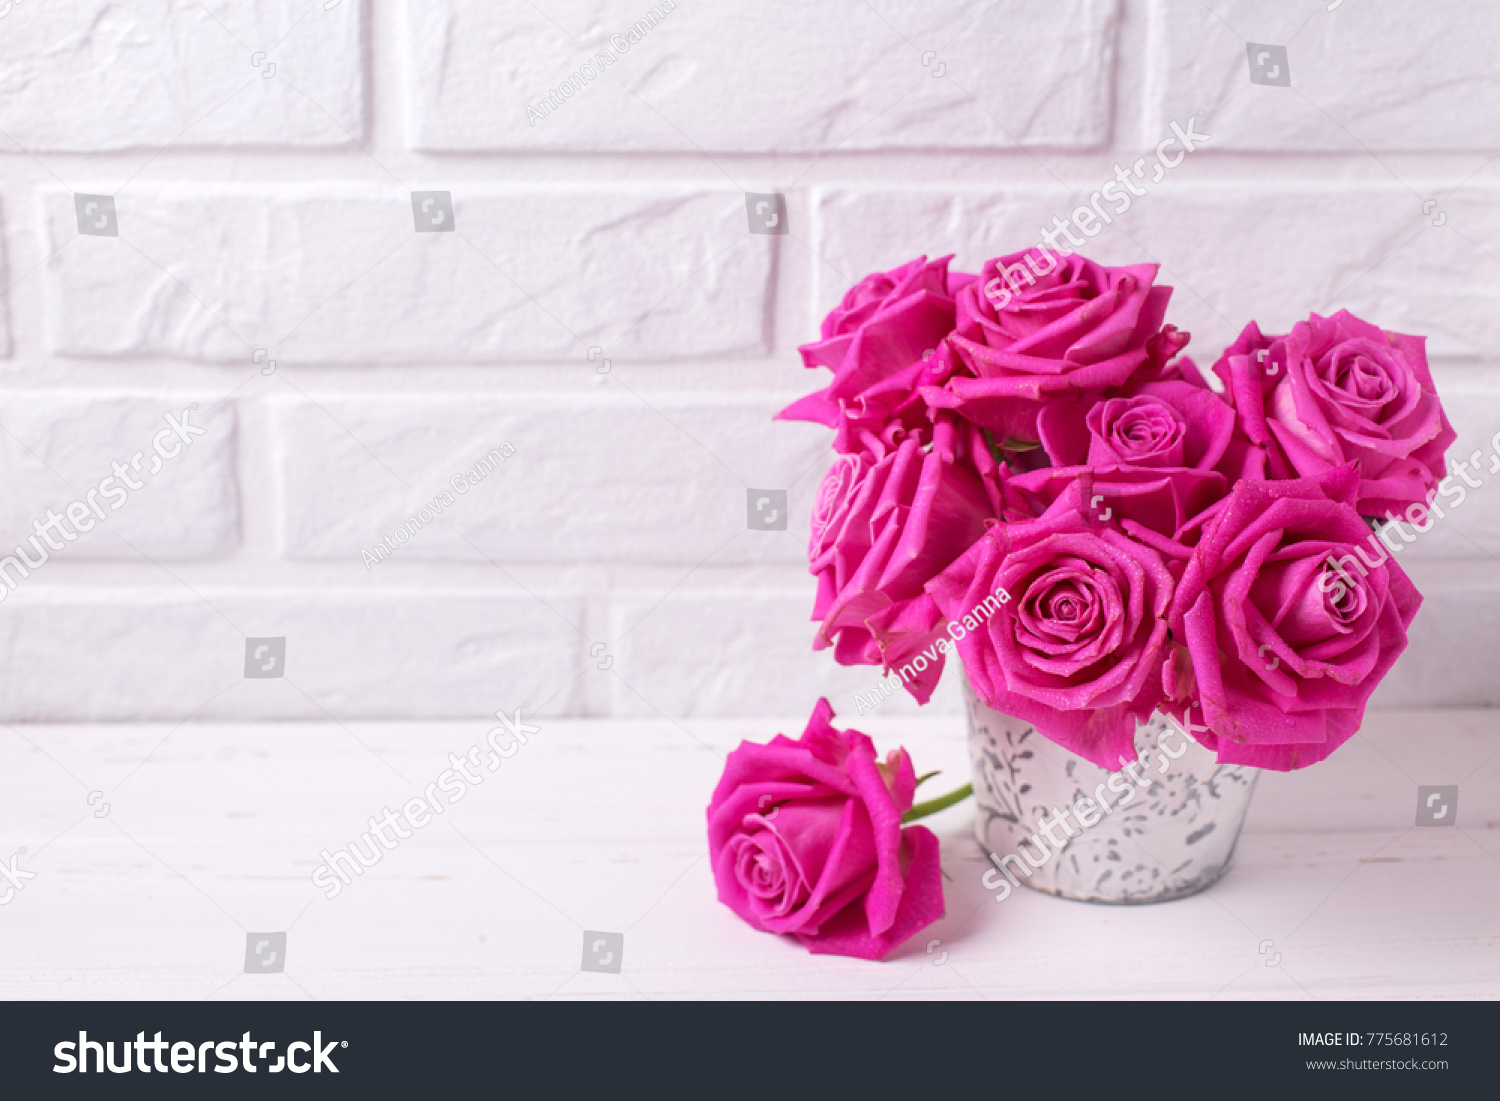 Bunch Of Bright Pink Roses Flowers On White Wooden Background